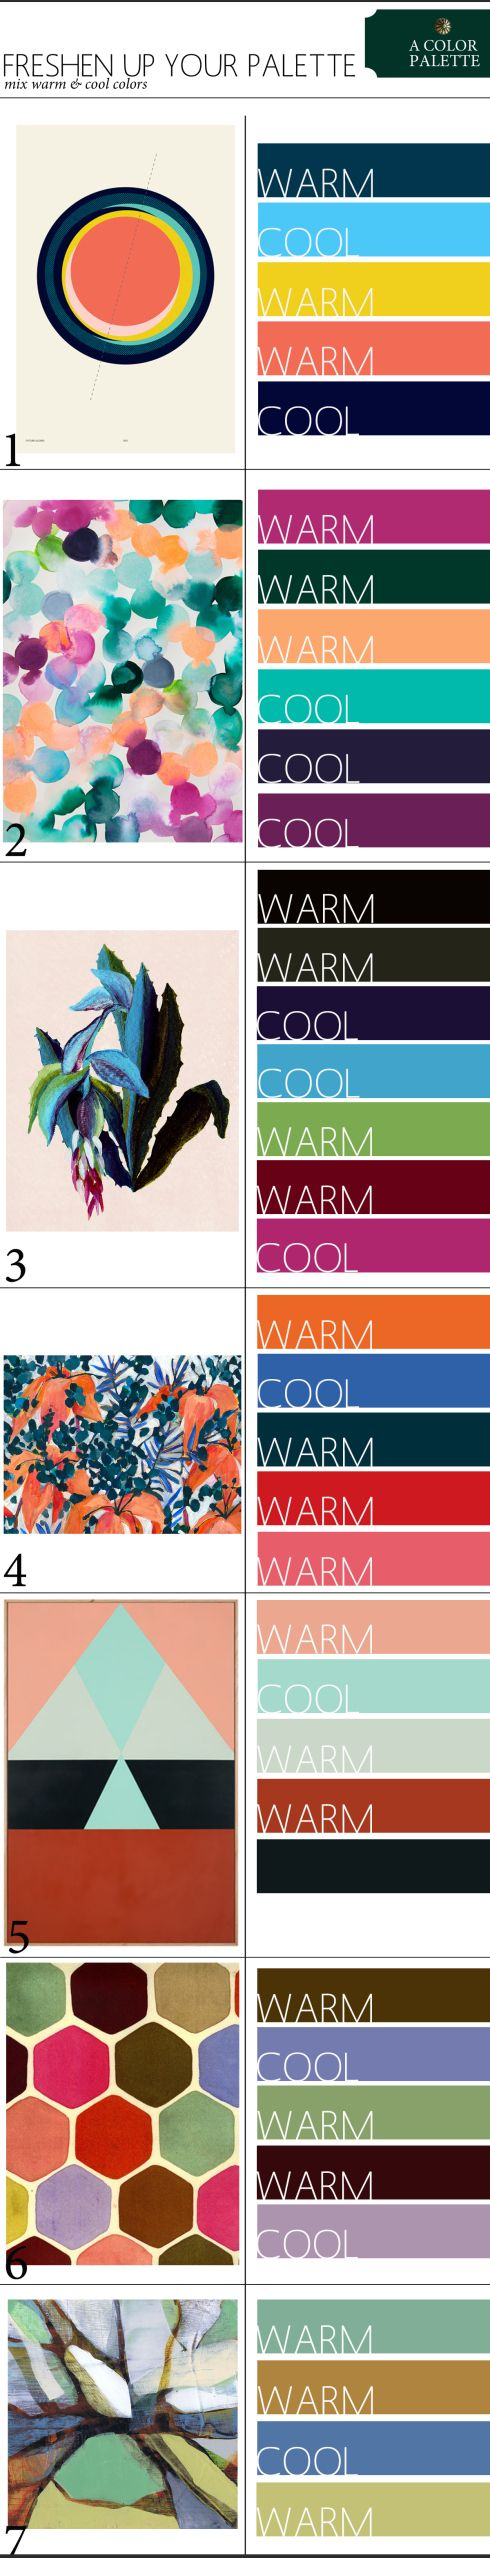 Freshen Up Your Color Palette and Mix Warm & Cool Colors